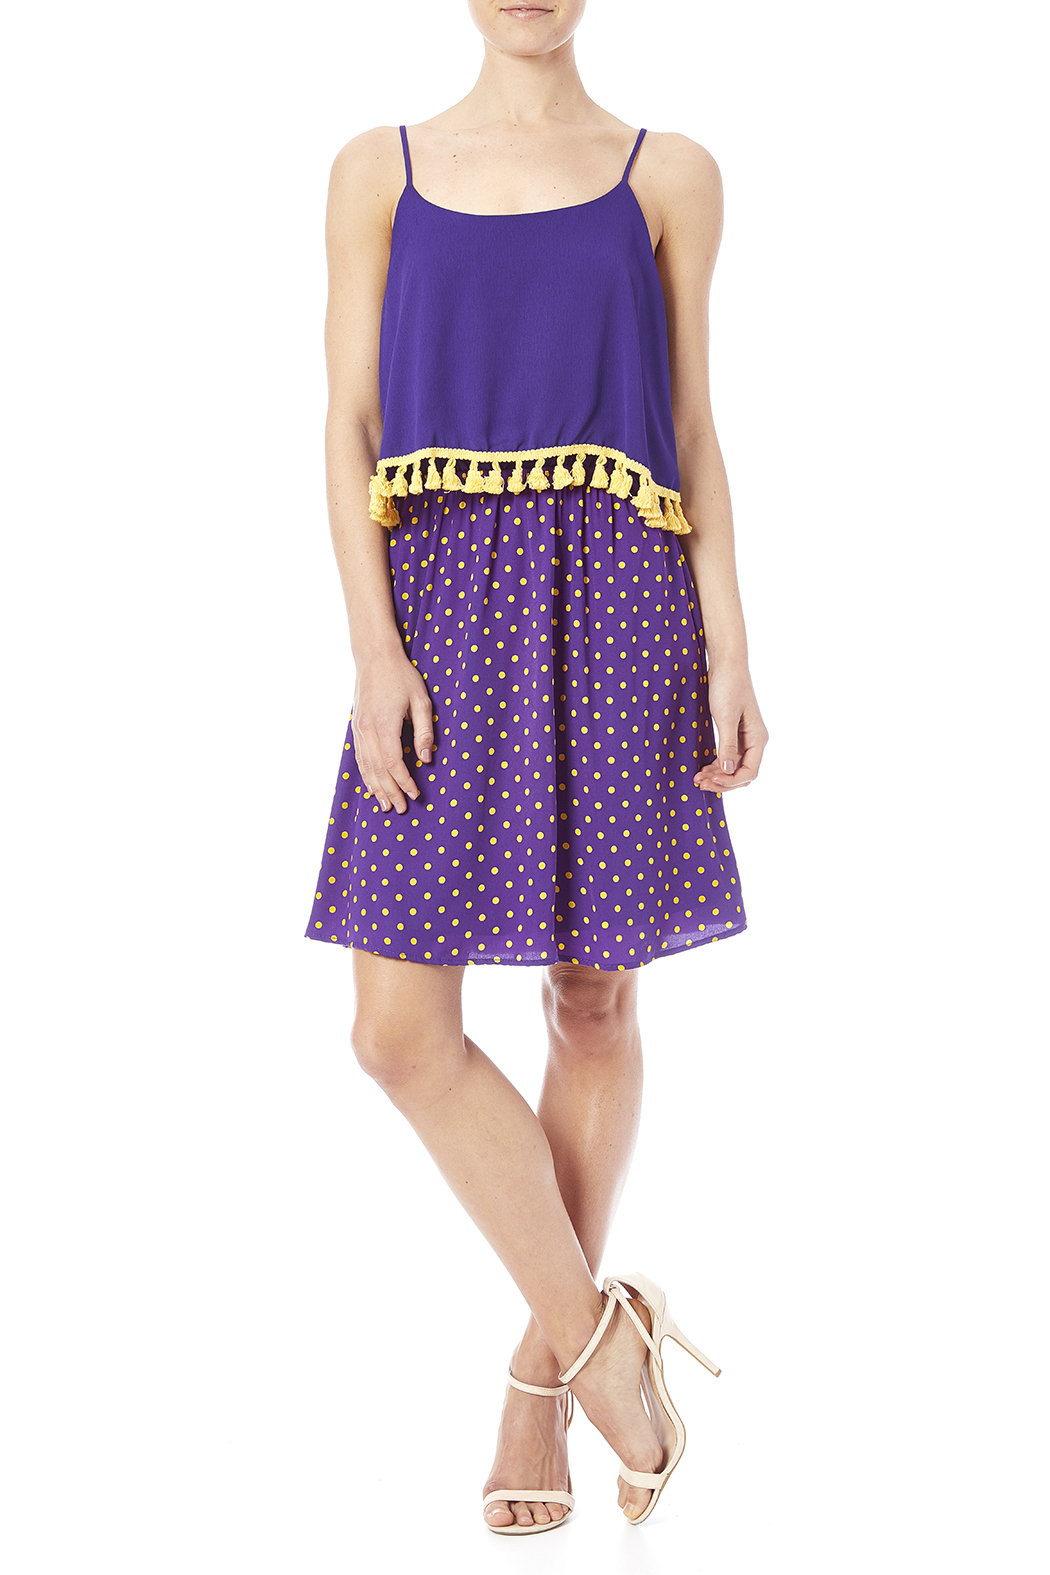 California clothing boutiques online